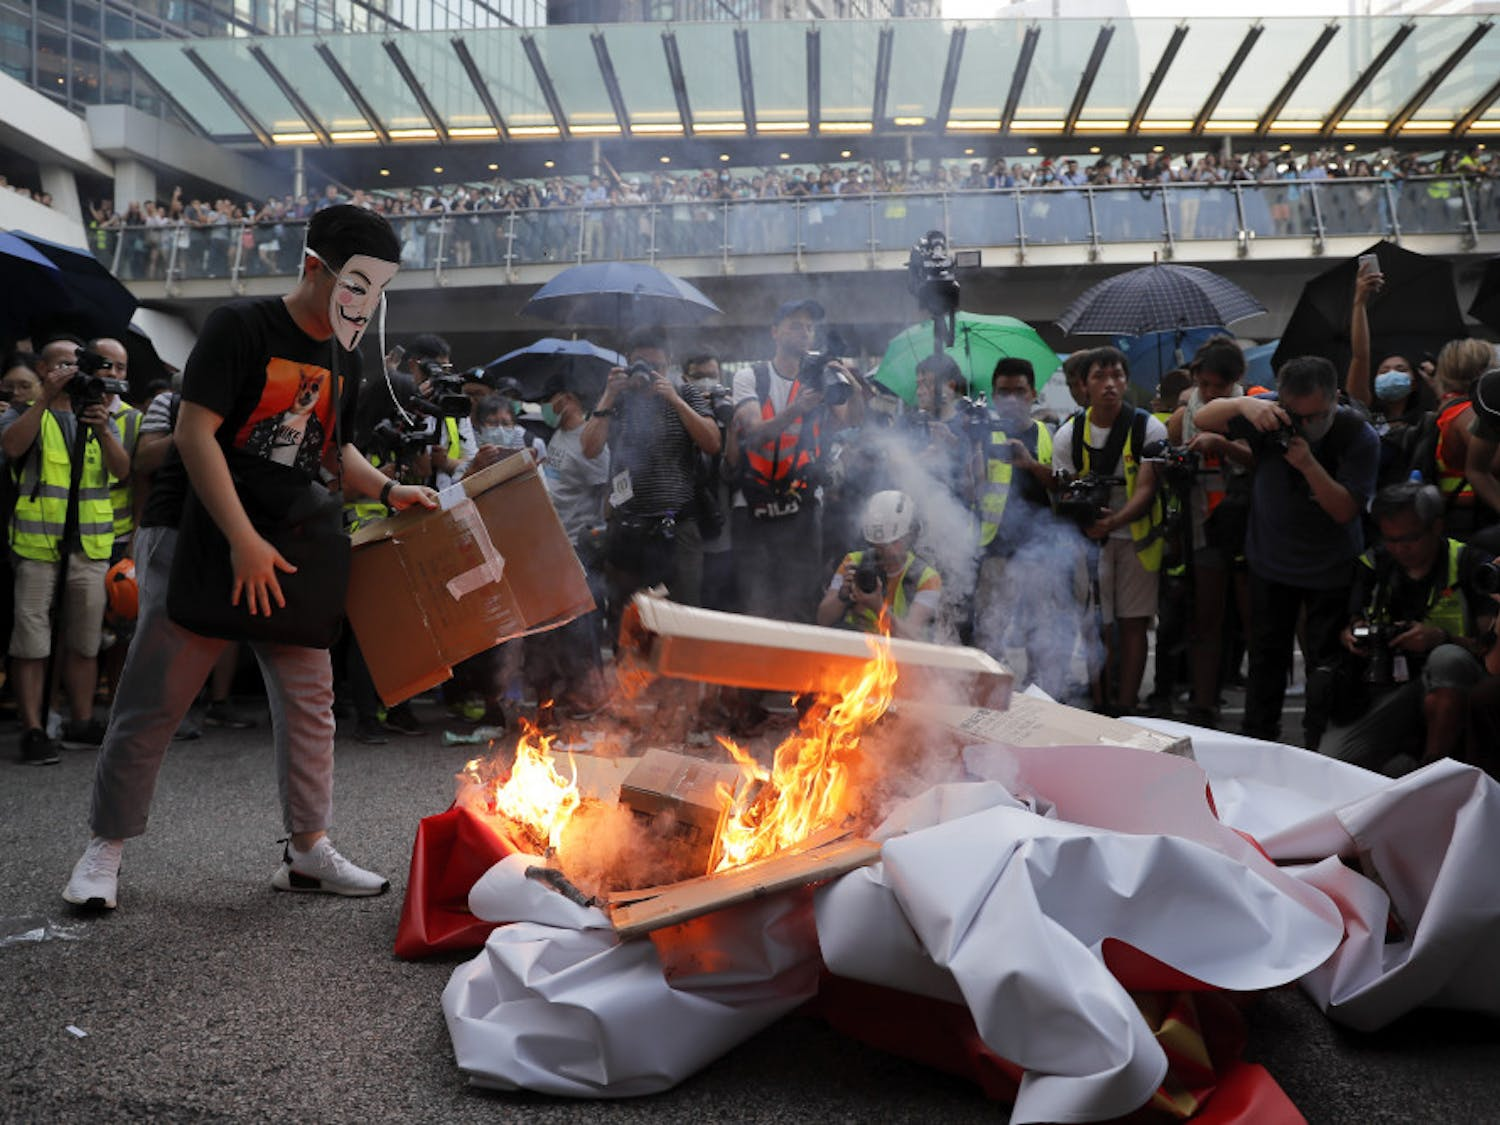 A masked protester sets fire to a China 70th anniversary celebration banner in Hong Kong, Friday, Oct. 4, 2019. Hong Kong Chief Executive Carrie Lam announced that protesters are banned from wearing masks to conceal their identities in a hardening of the government's stance against the 4-month-old demonstrations. (AP Photo/Kin Cheung)